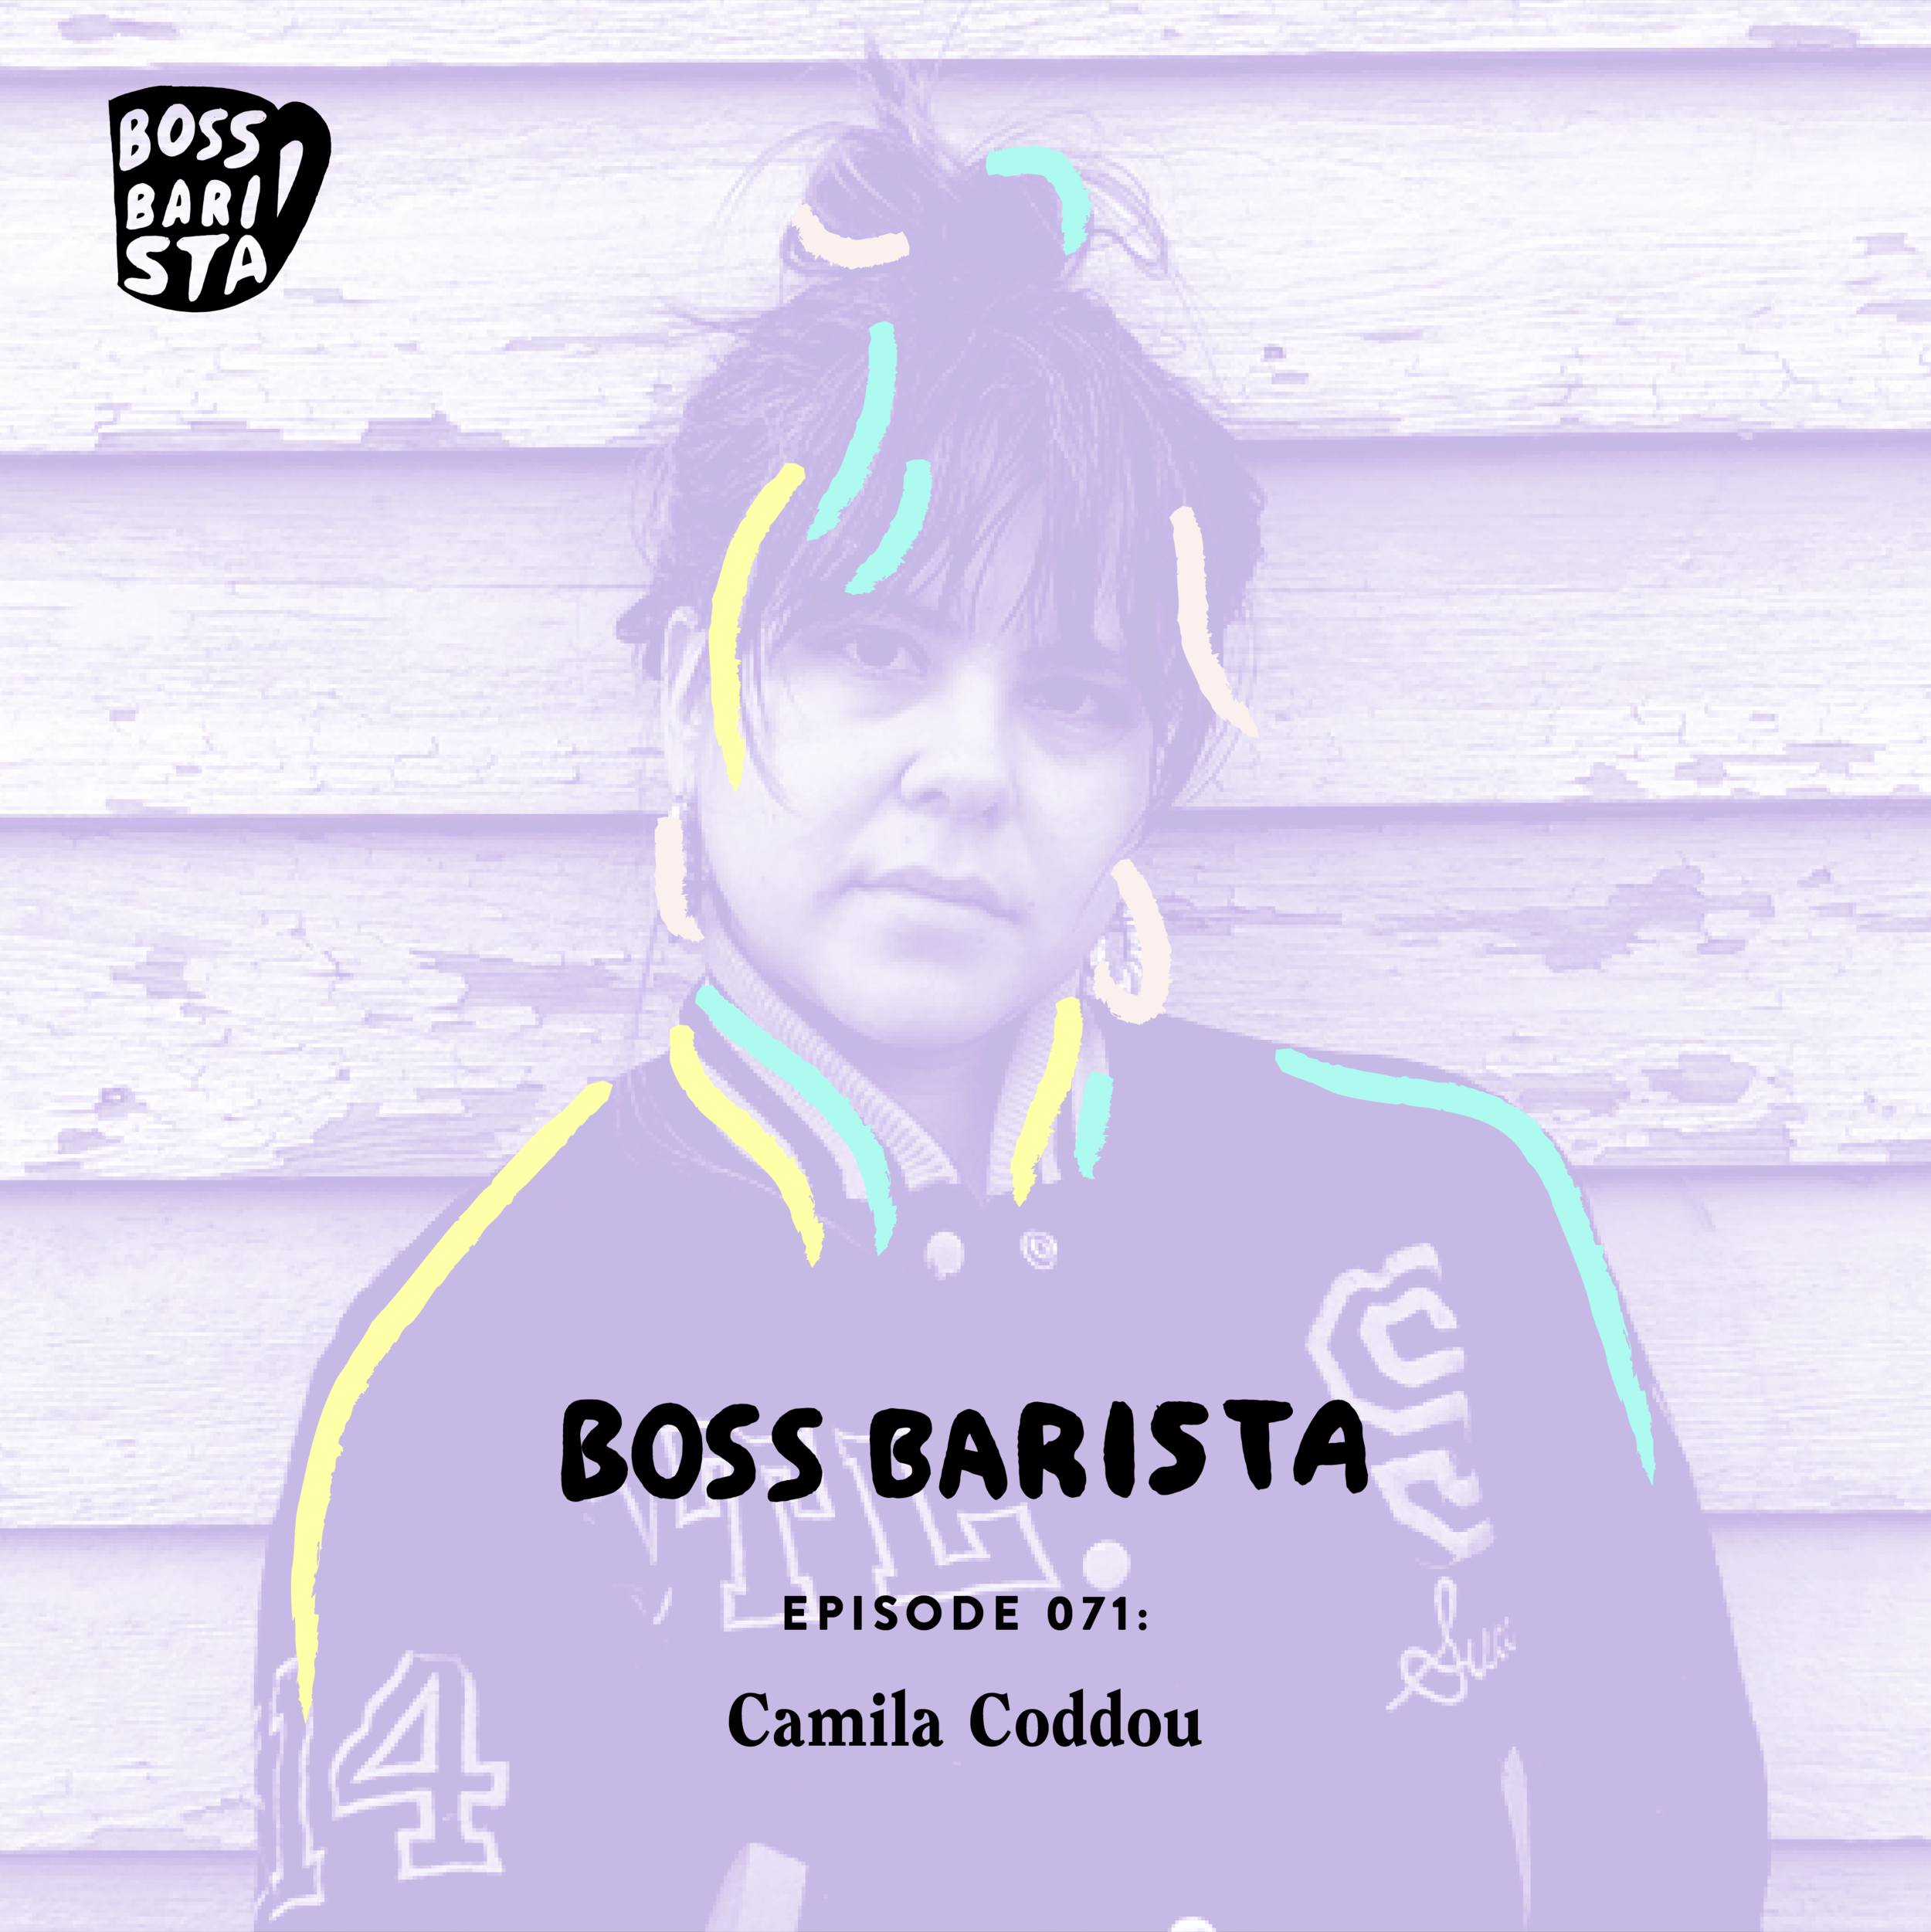 Boss_Barista_071_EPISODE_COVER.png